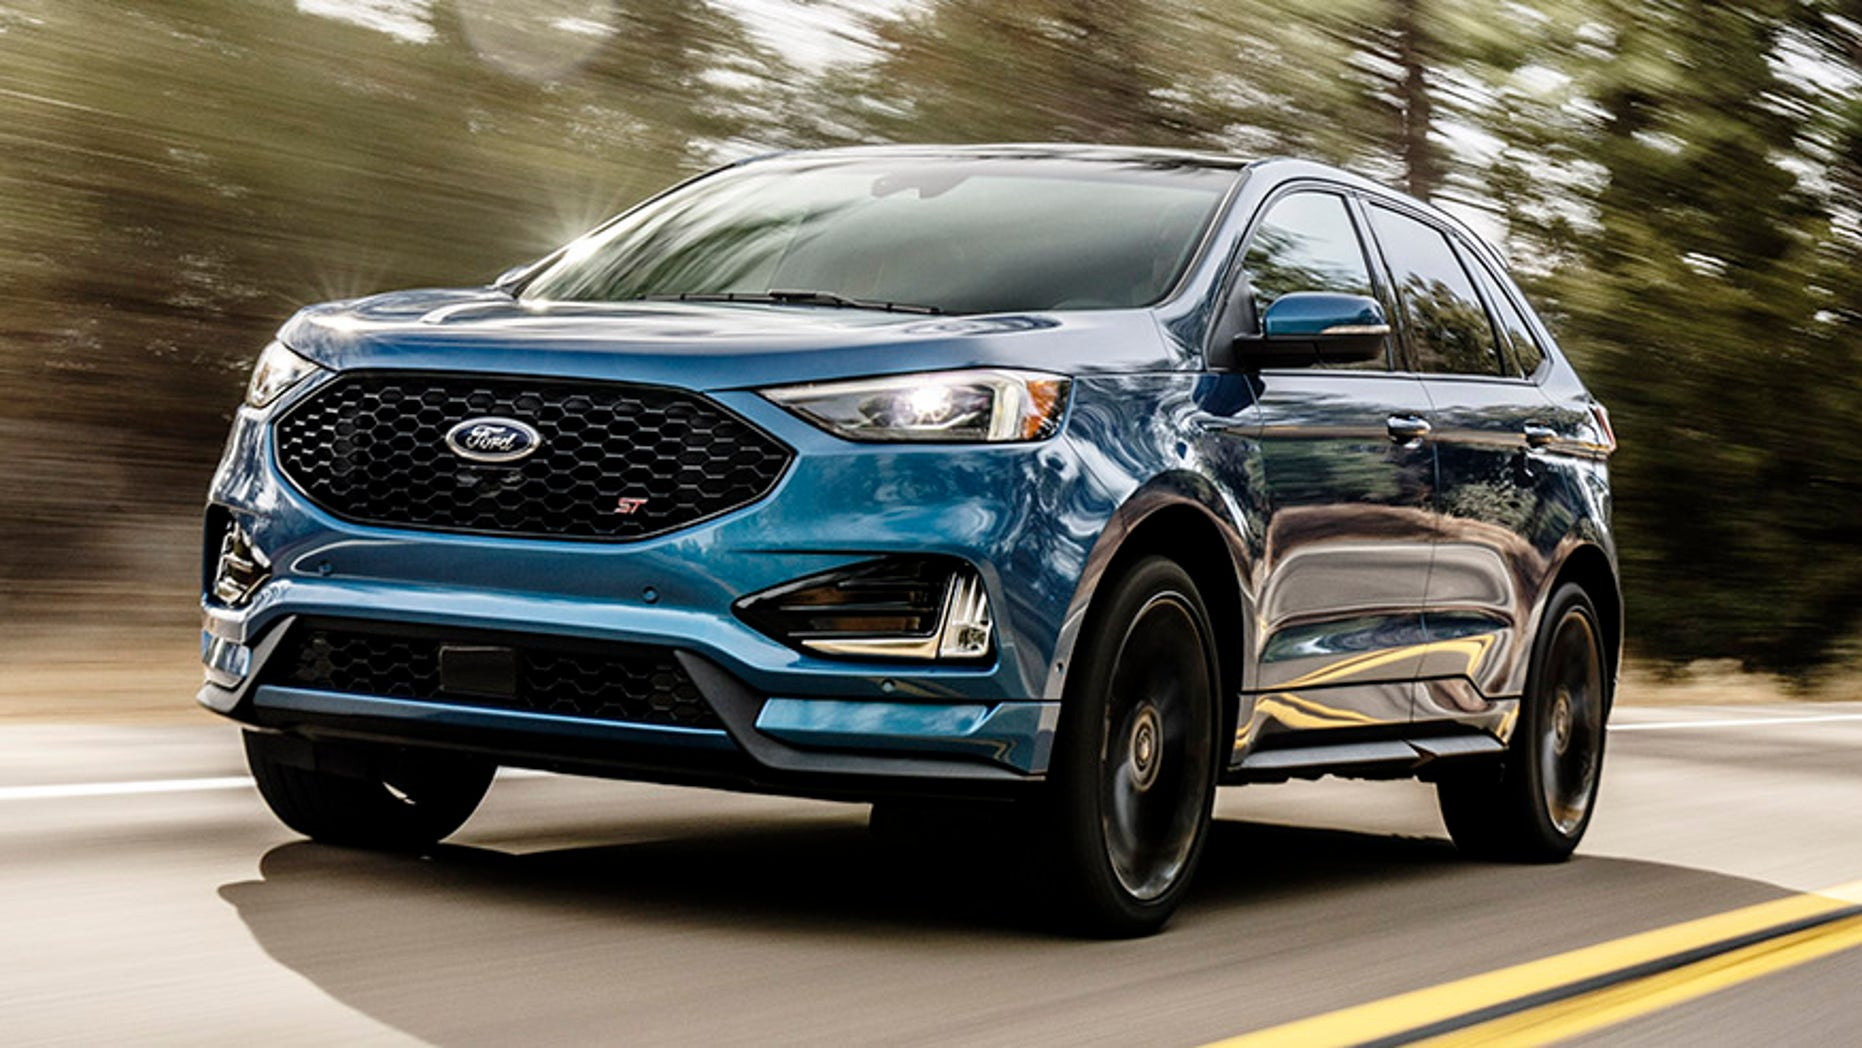 Detroit Auto Show Ford Enters Performance SUV Segment With Edge ST - Ford show car